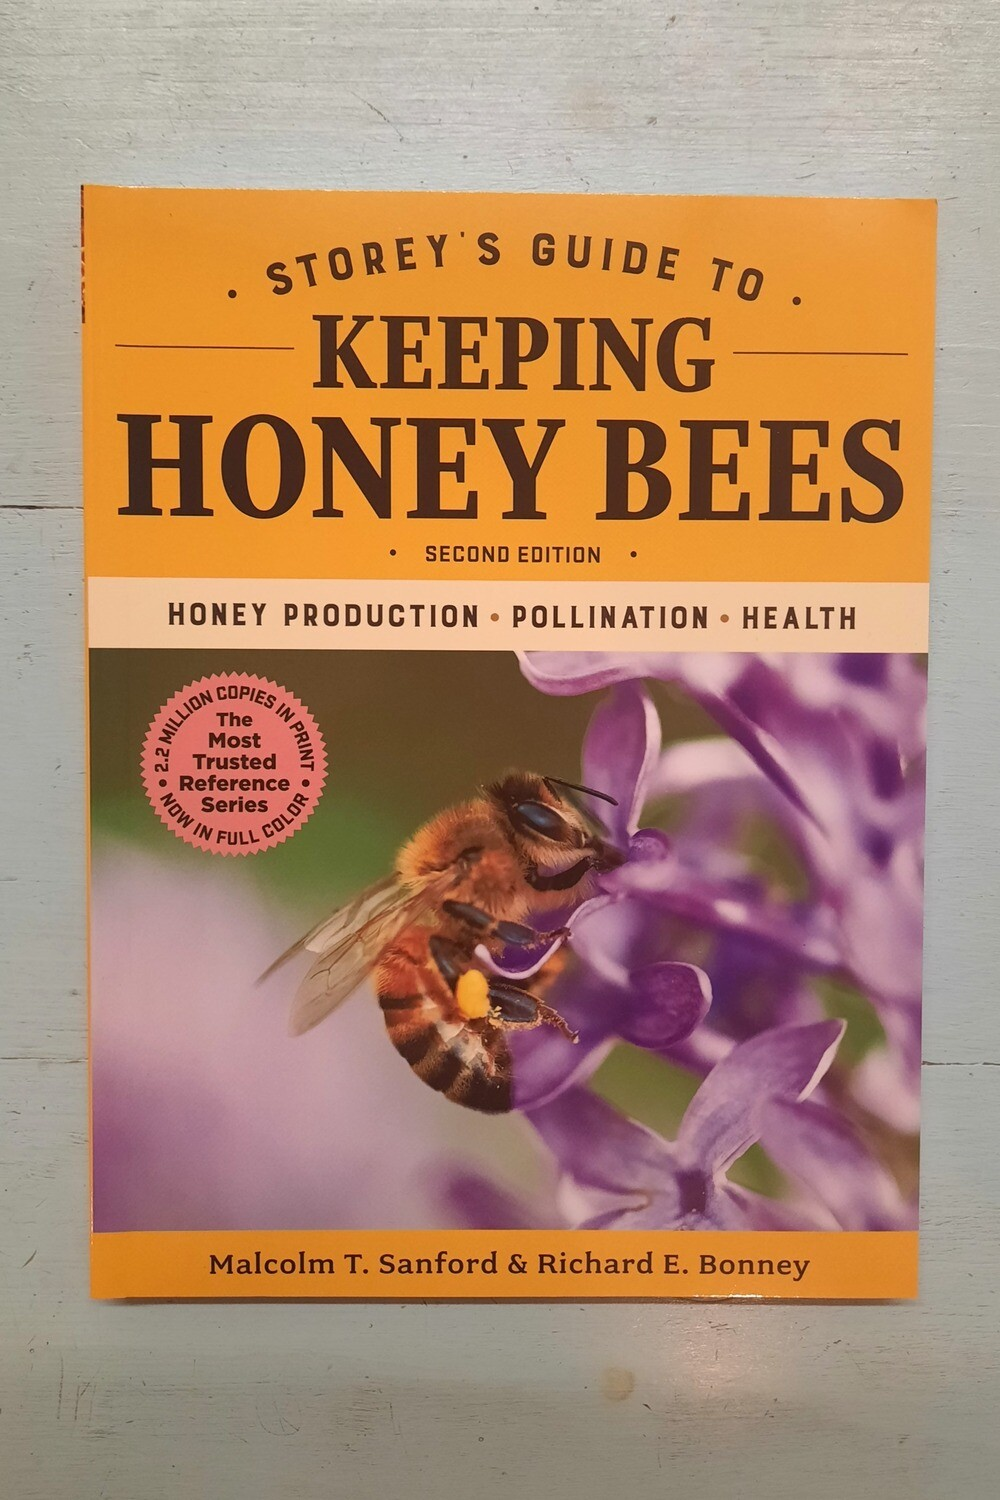 Storey's Guide to Keeping Honey Bees, by Malcolm Sanford and Richard Bonney